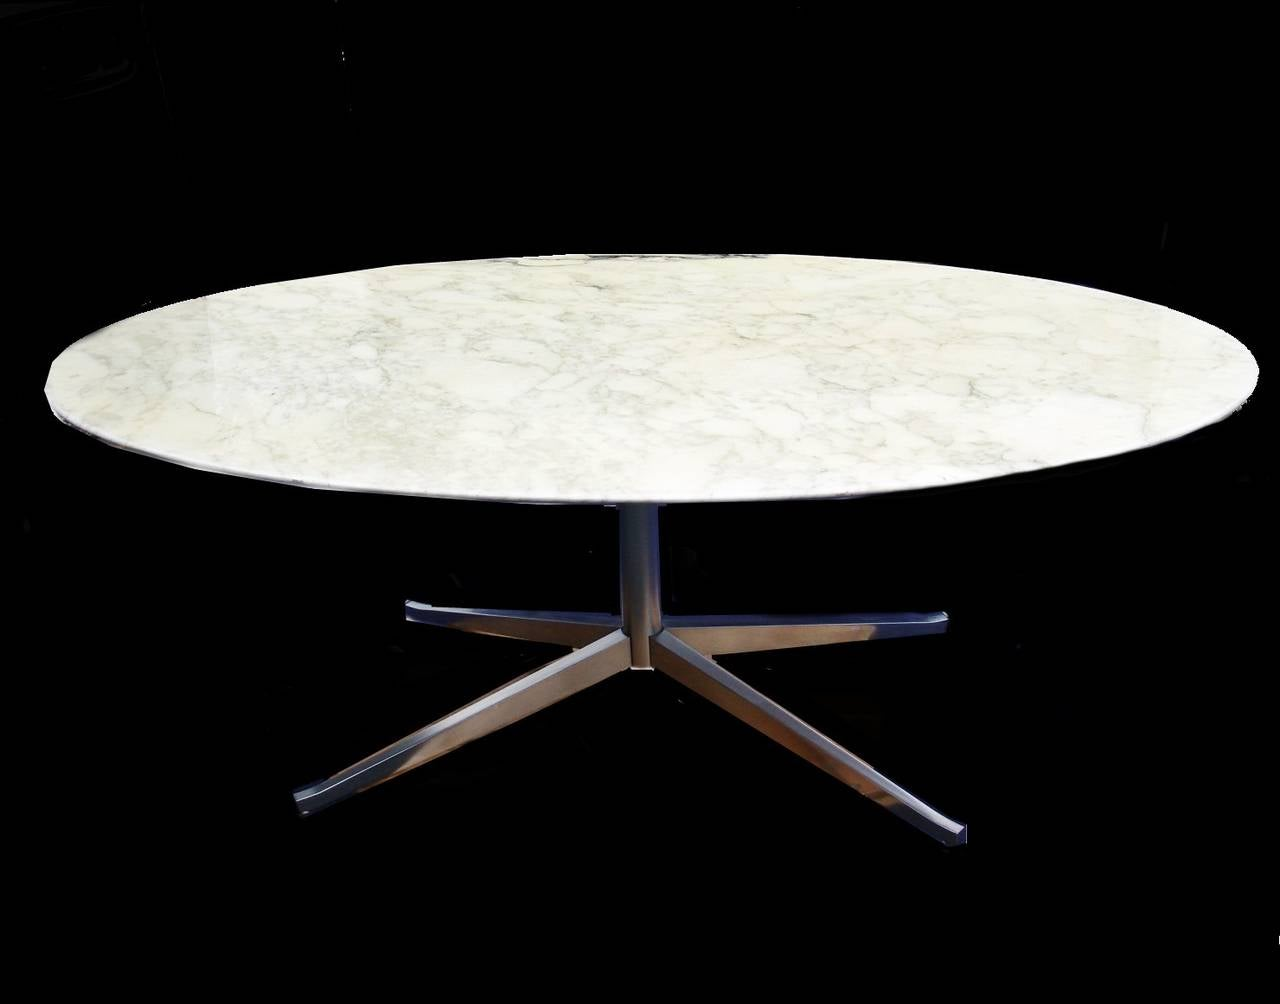 florence knoll marble top oval dining table desk at 1stdibs. Black Bedroom Furniture Sets. Home Design Ideas